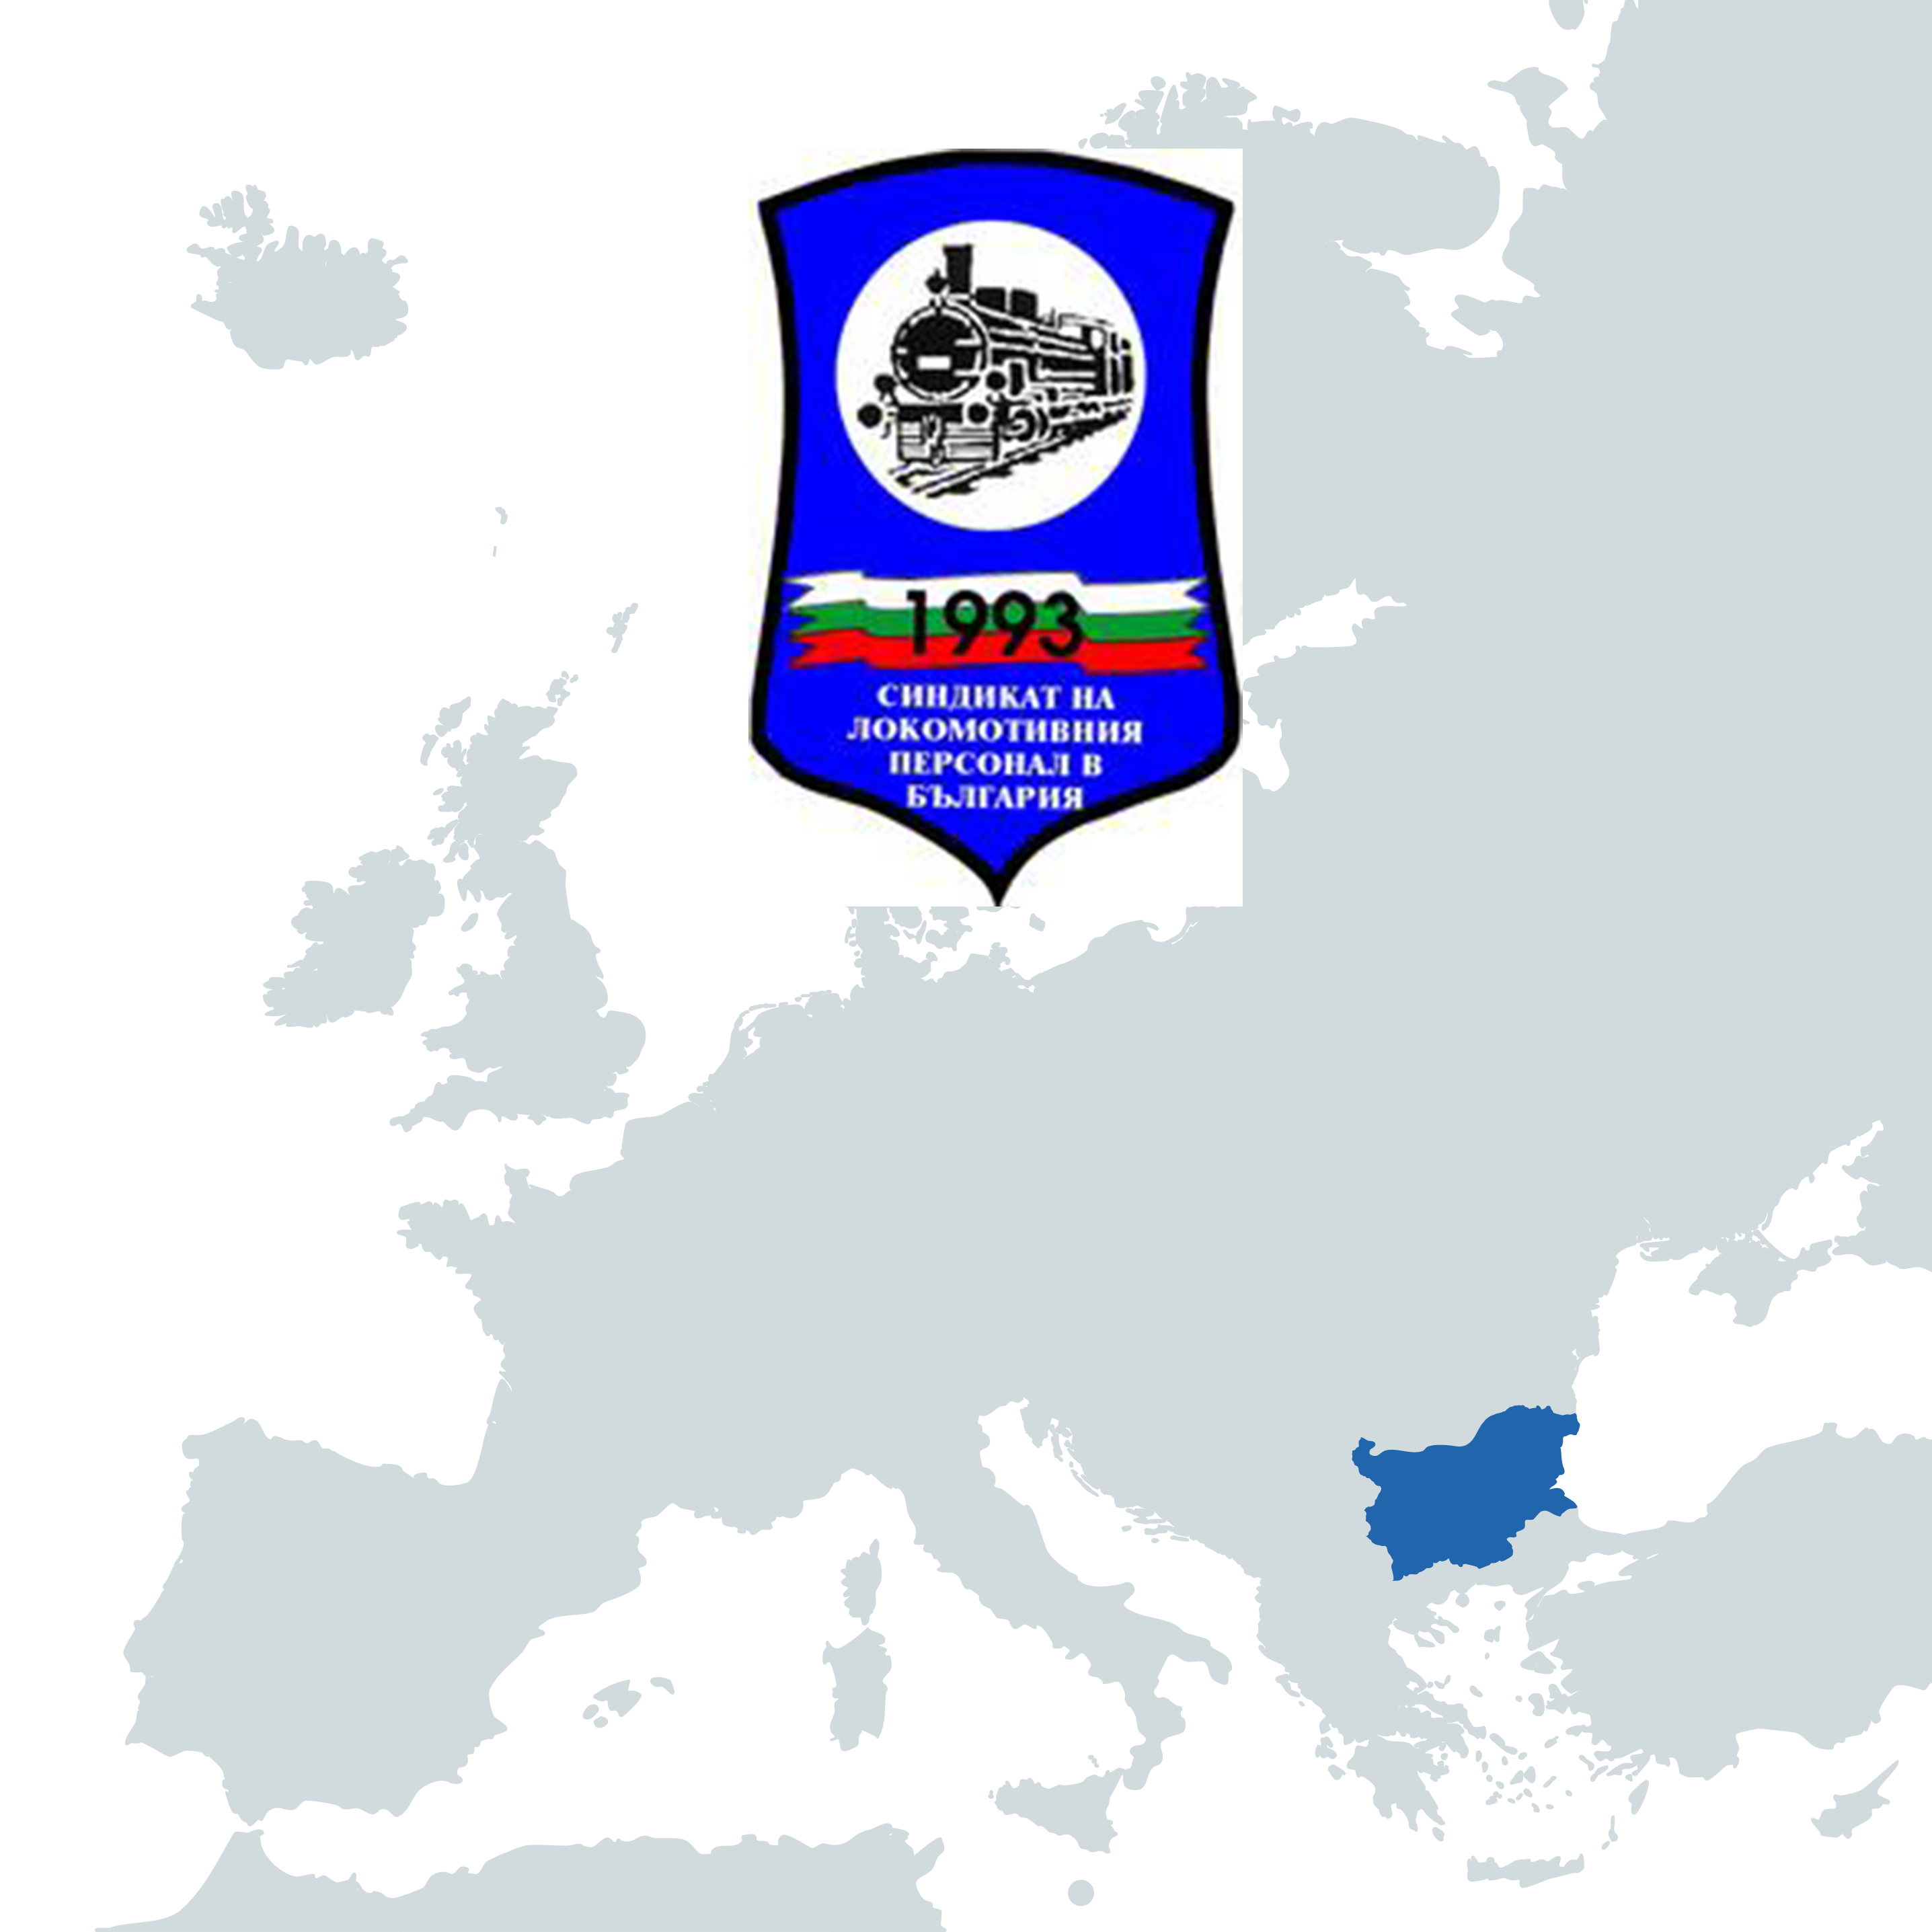 ULDB / Union of Locomotive Drivers in Bulgaria